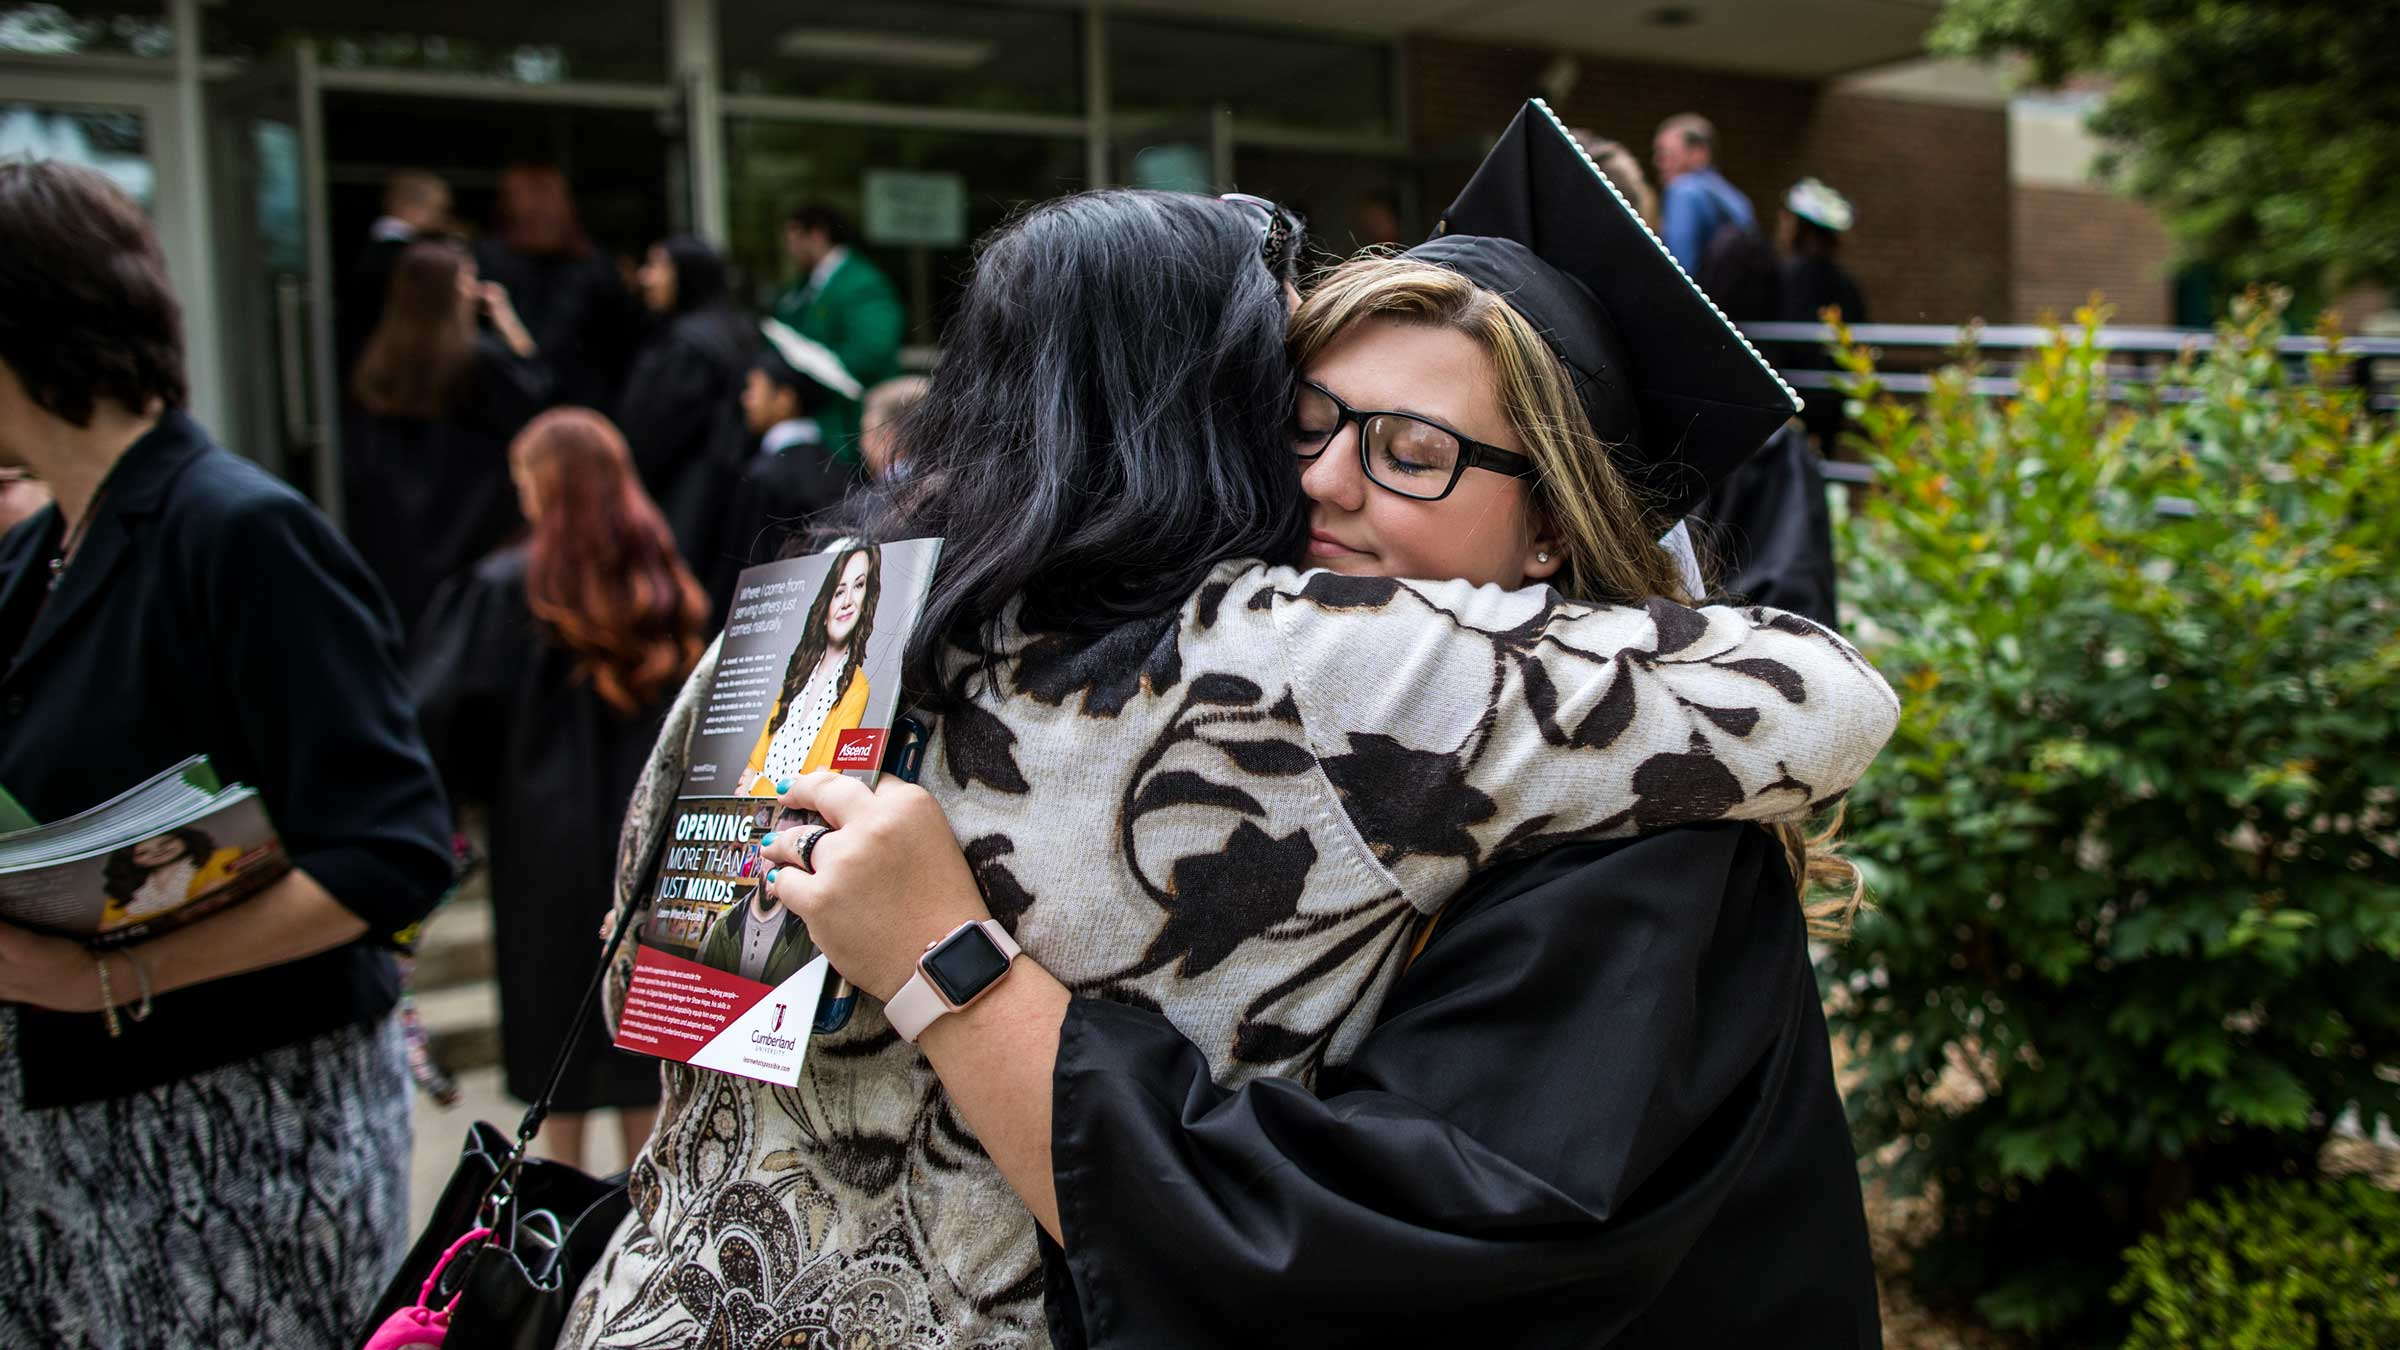 Free tuition is now part of the national conversation. For some, like Nicole-Lynn Riel of Tullahoma, Tenn., it worked. In Tennessee, community colleges are free. Riel graduated from Motlow State Community College in May 2017 without debt, worthy of a hug from her mother.